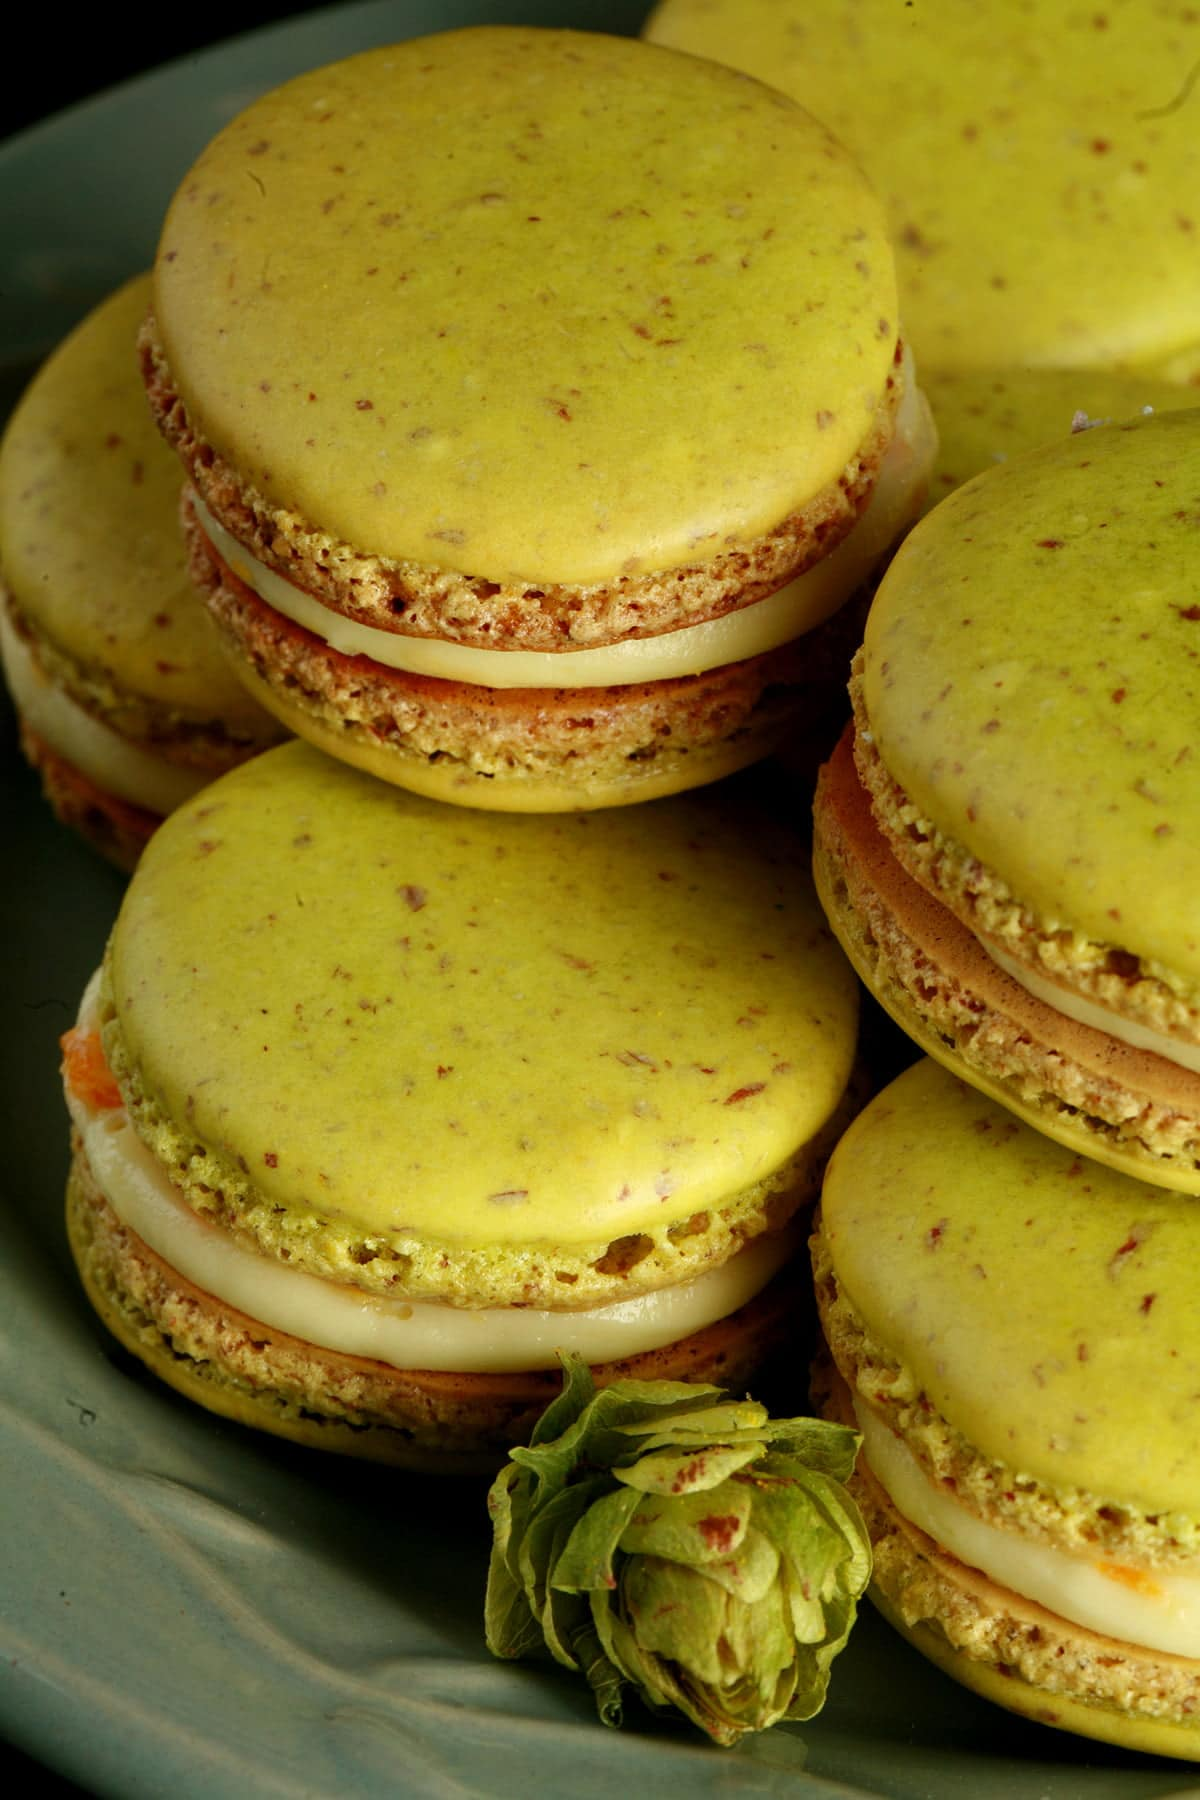 A small green plate is piled high with bright lime green Citrus Hop French Macarons. There is a fresh hop flower on the plate, and bits of orange zest visible in the filling of the macarons.